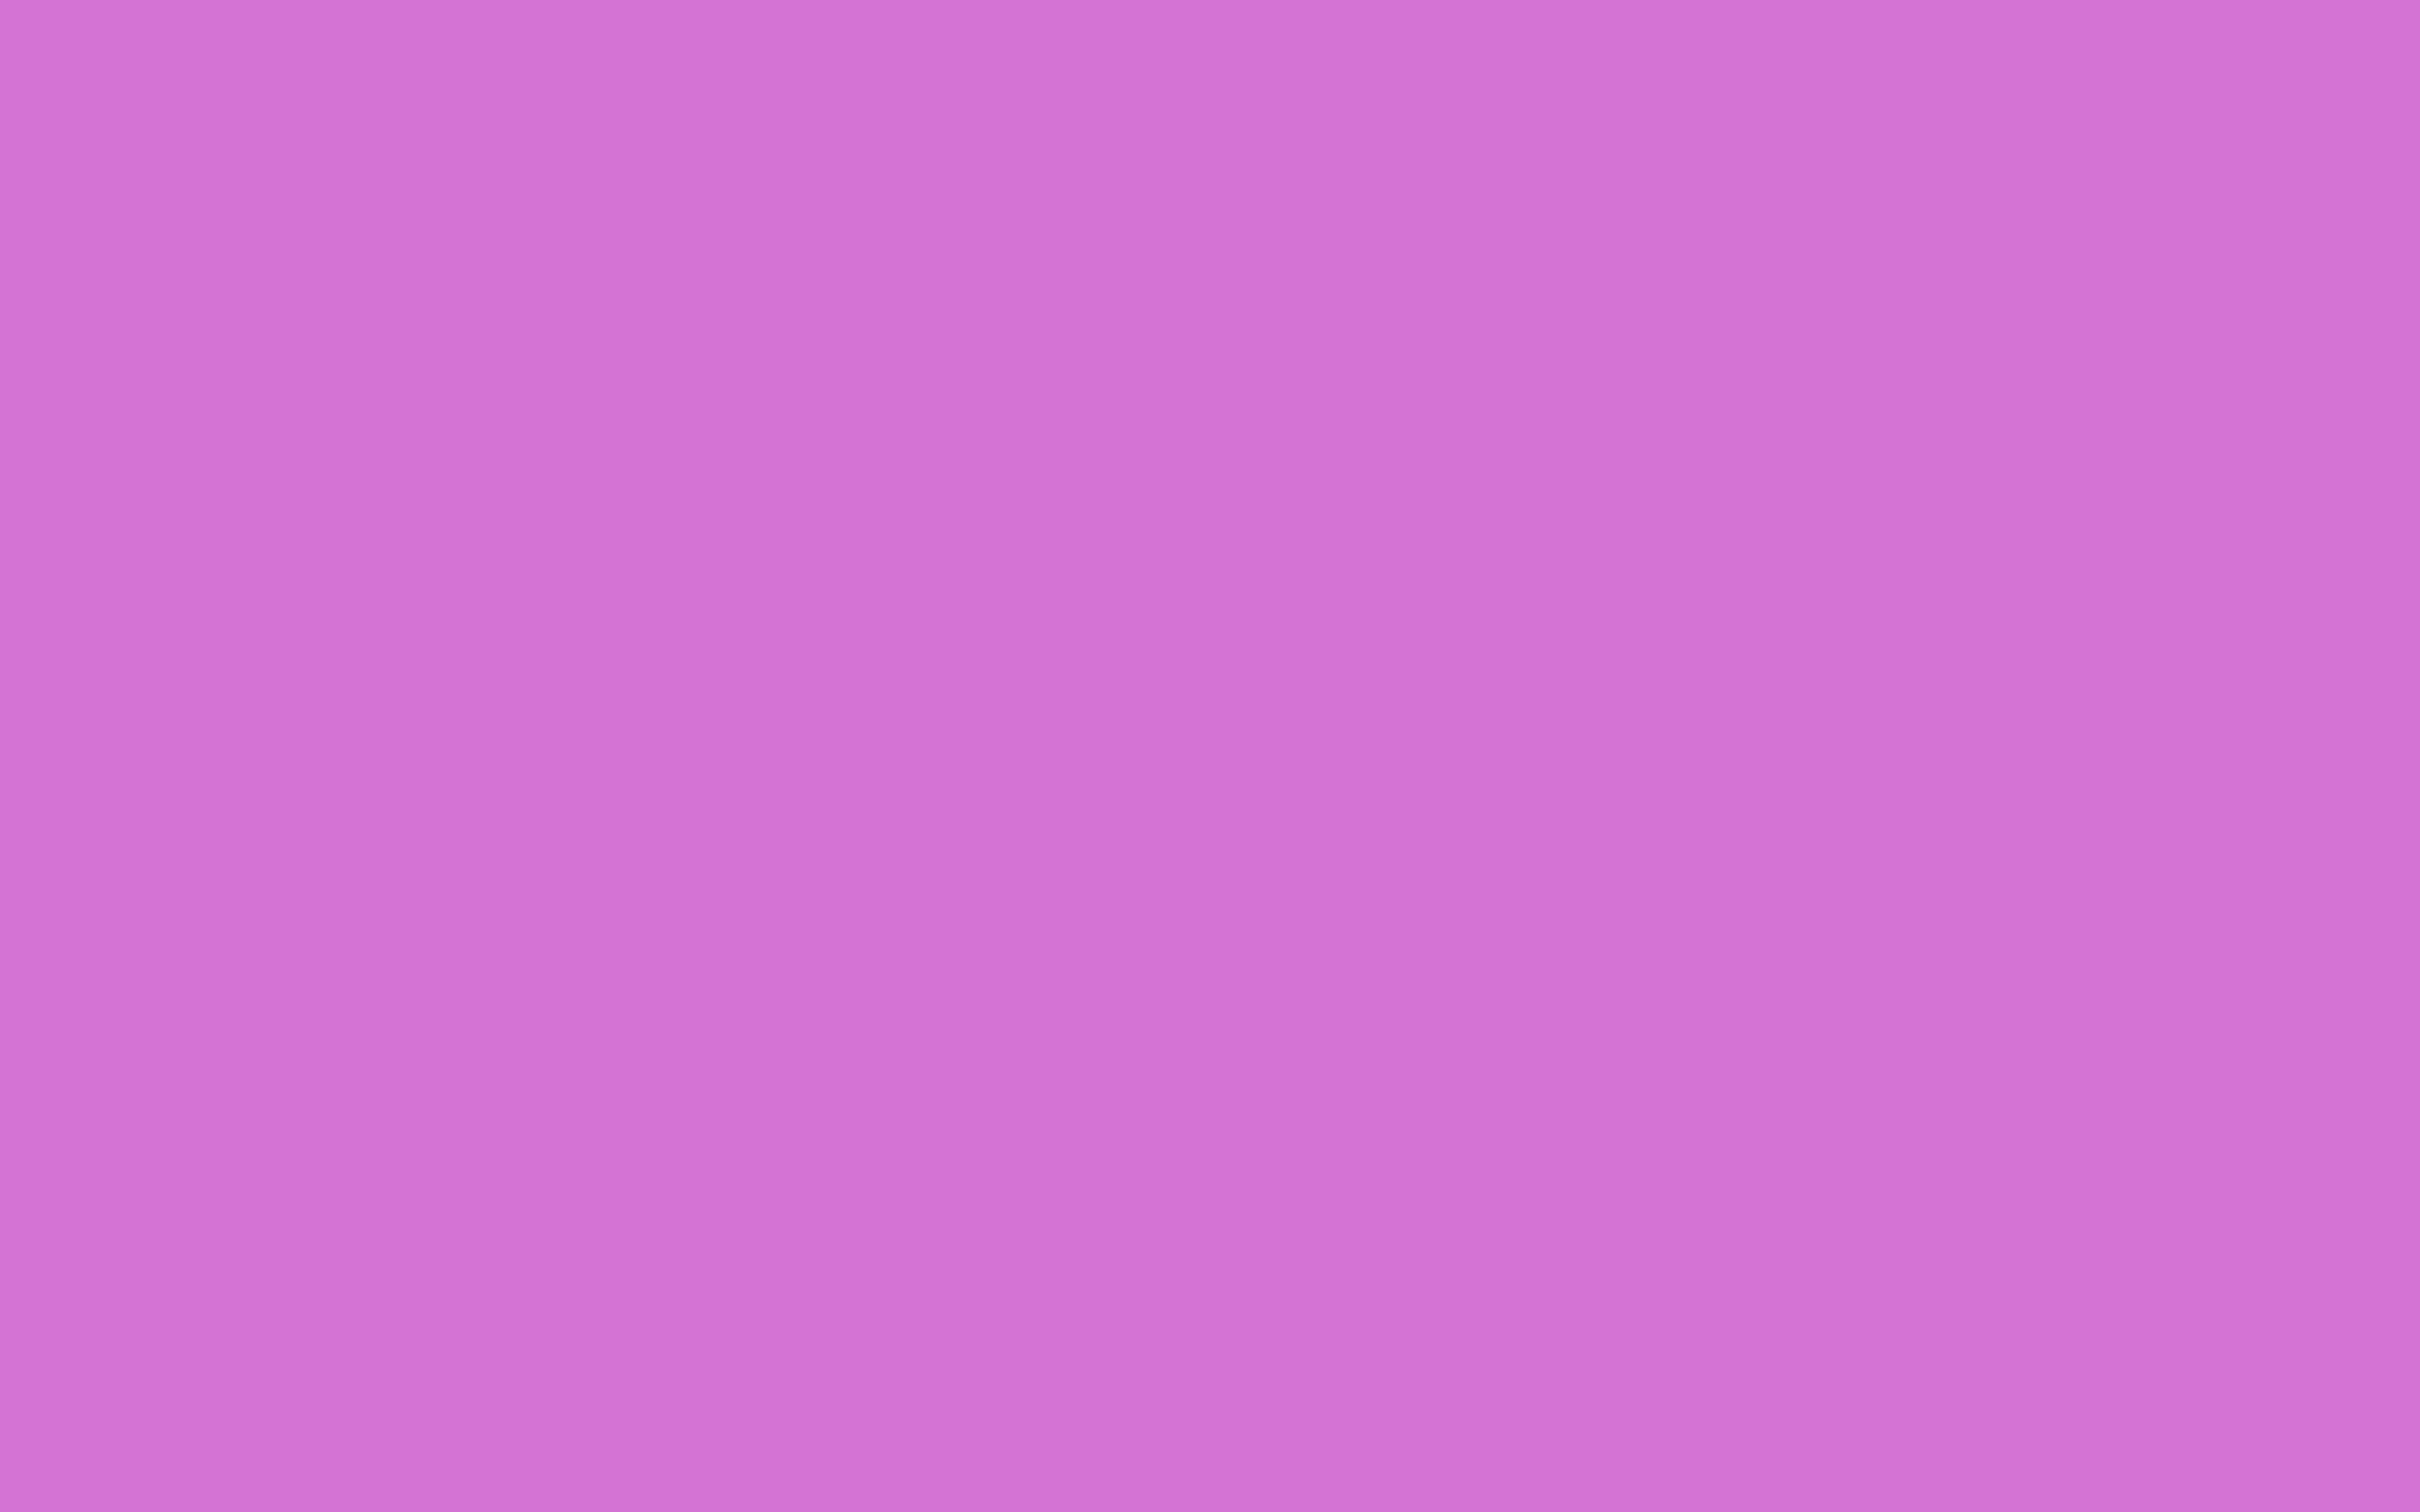 2560x1600 French Mauve Solid Color Background